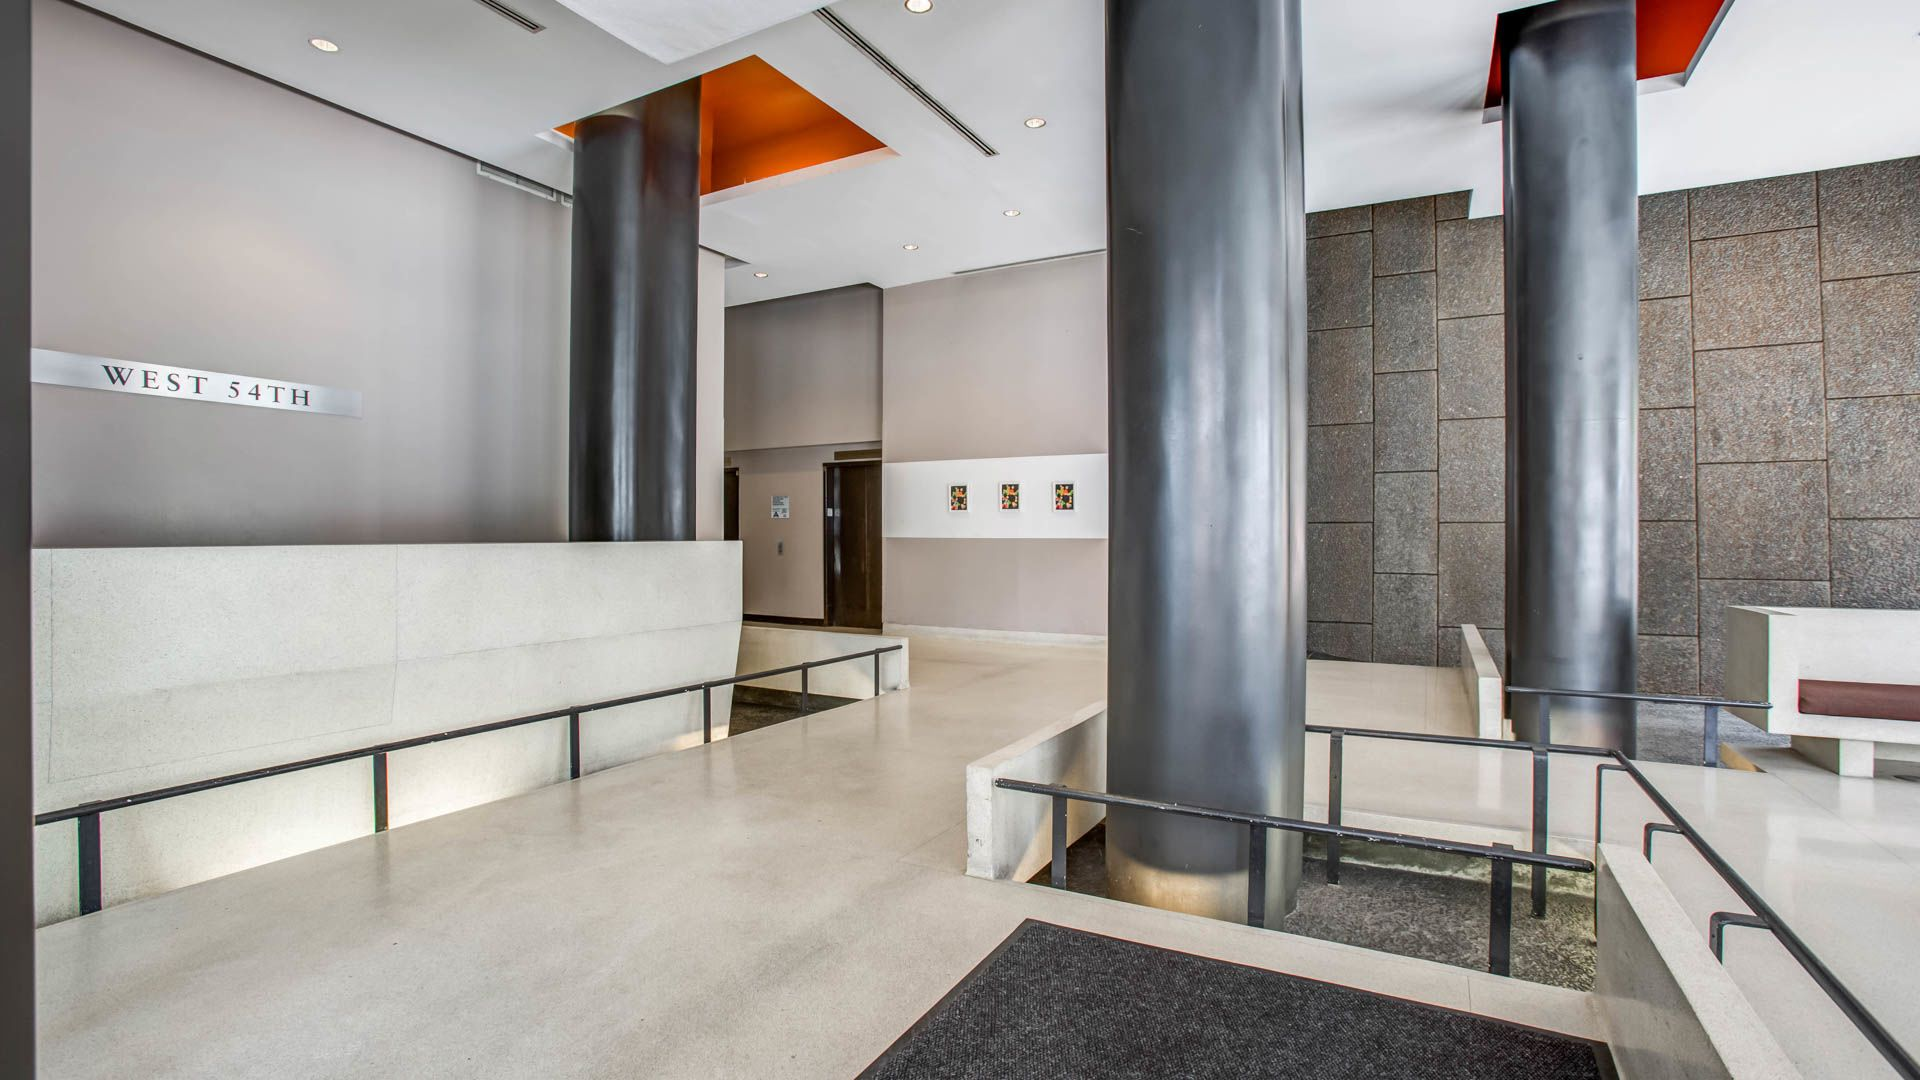 West 54th Apartments - Lobby